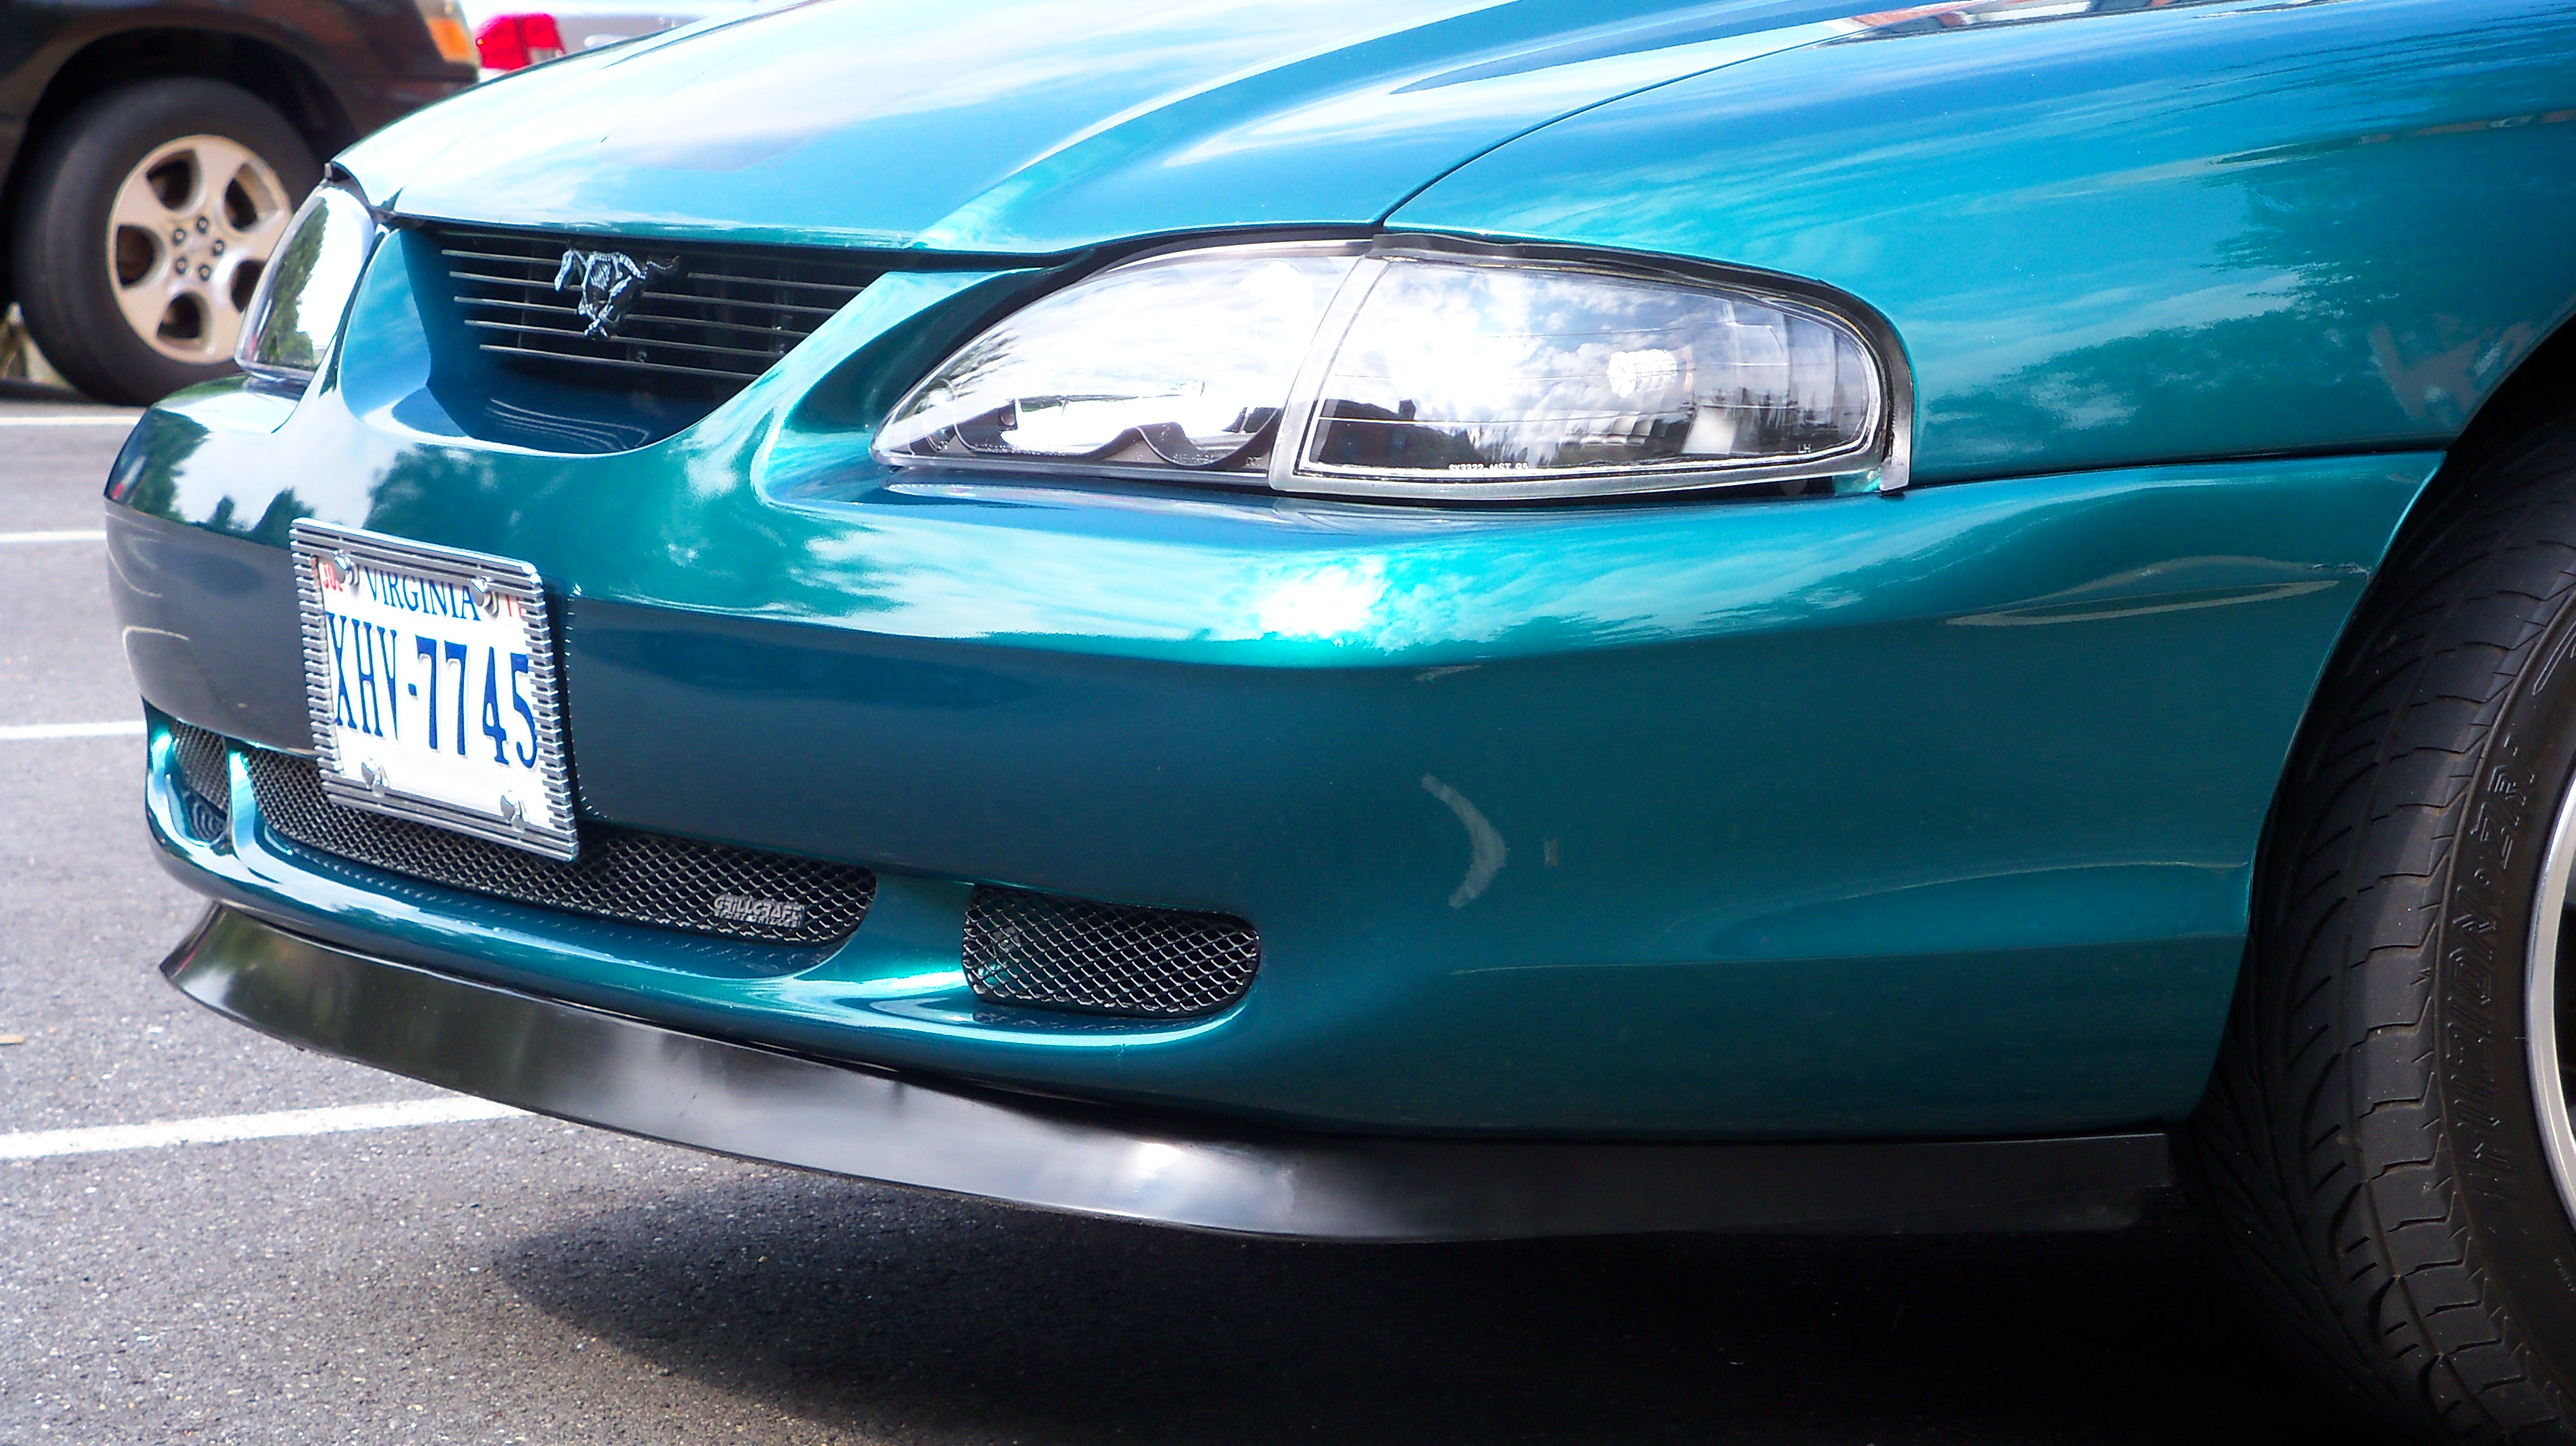 Click image for larger version  Name:New Paint- Front Bumper 003.JPG Views:98 Size:1.59 MB ID:29787